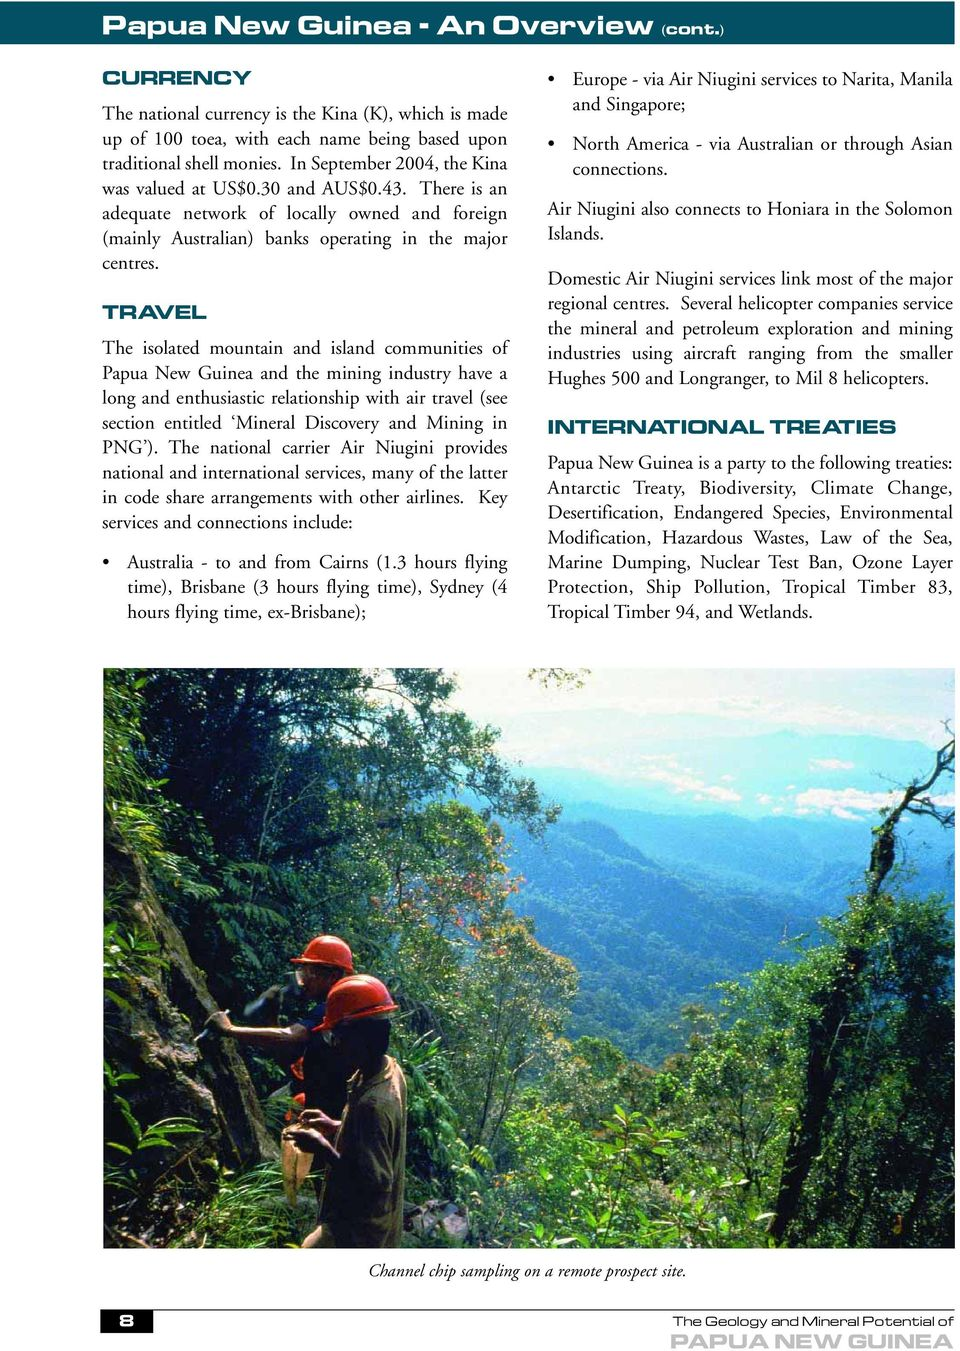 The Geology and Mineral Potential of PAPUA NEW GUINEA